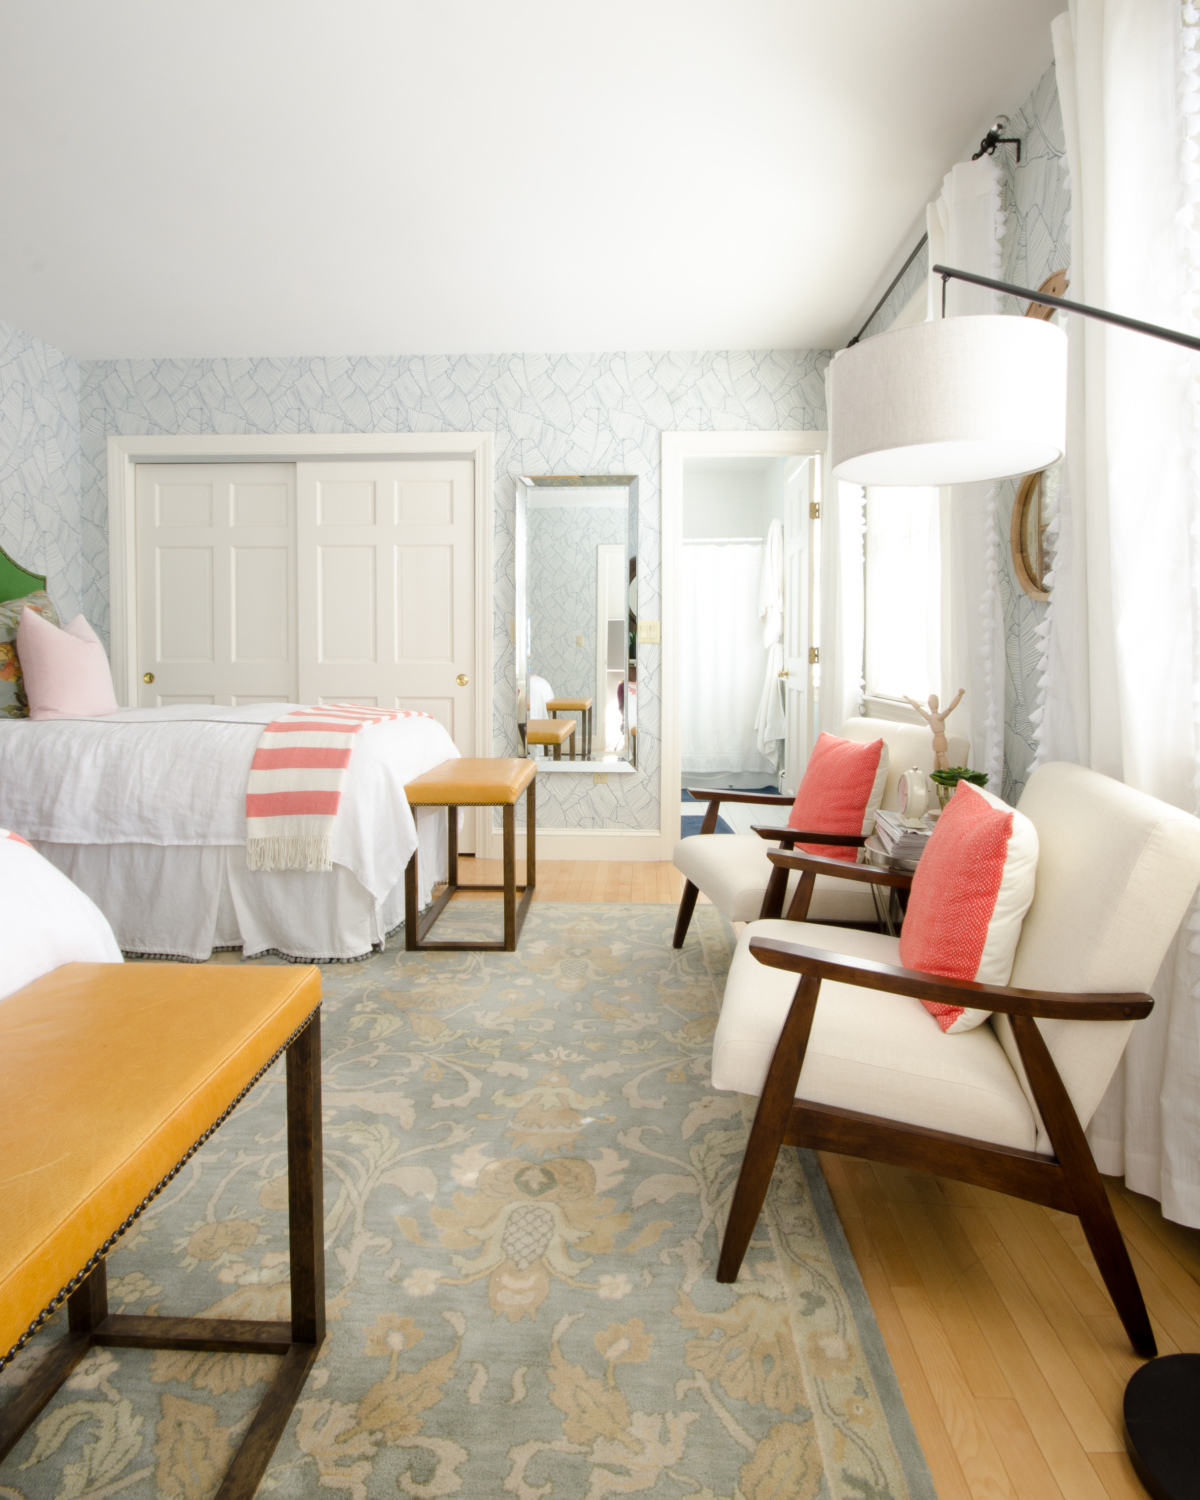 Gorgeous guest room with palm wallpaper, green linen headboards, mustard yellow leather benches, and accents of blush and coral